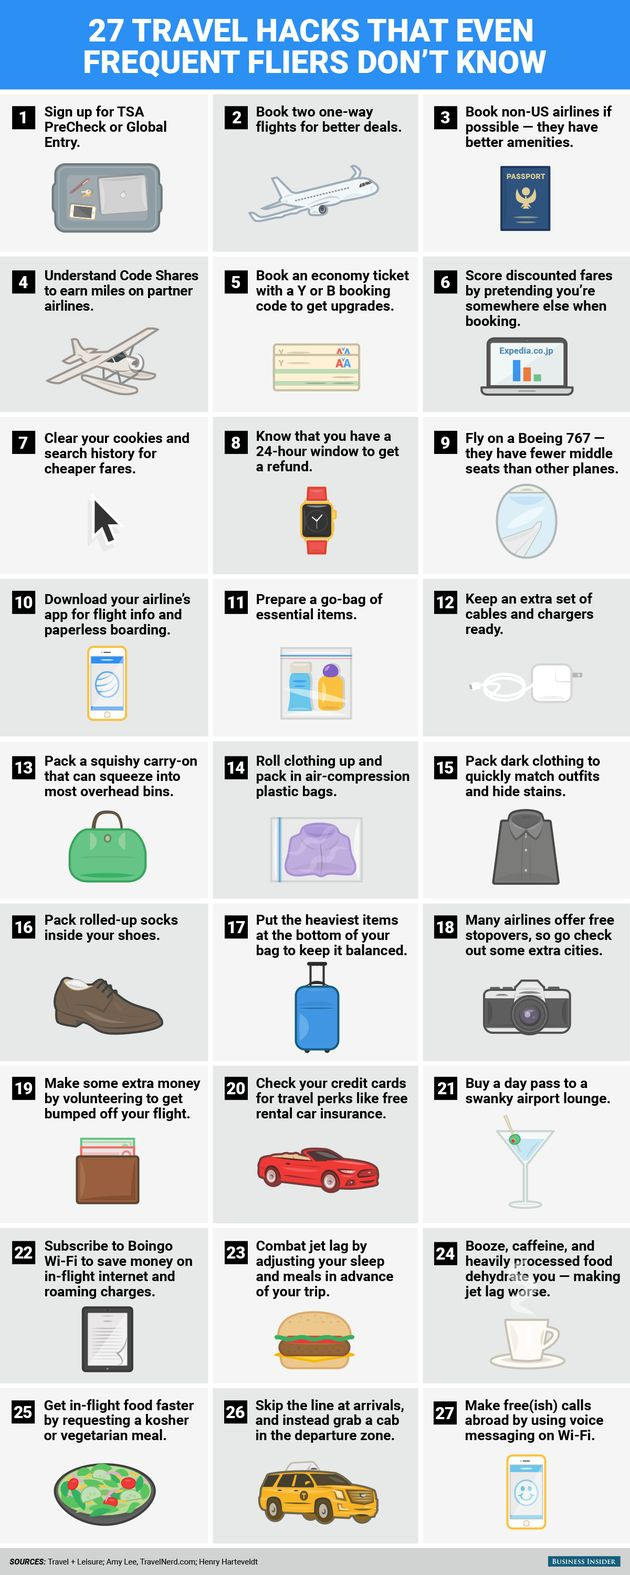 27 game-changing travel hacks every frequent flier should know!